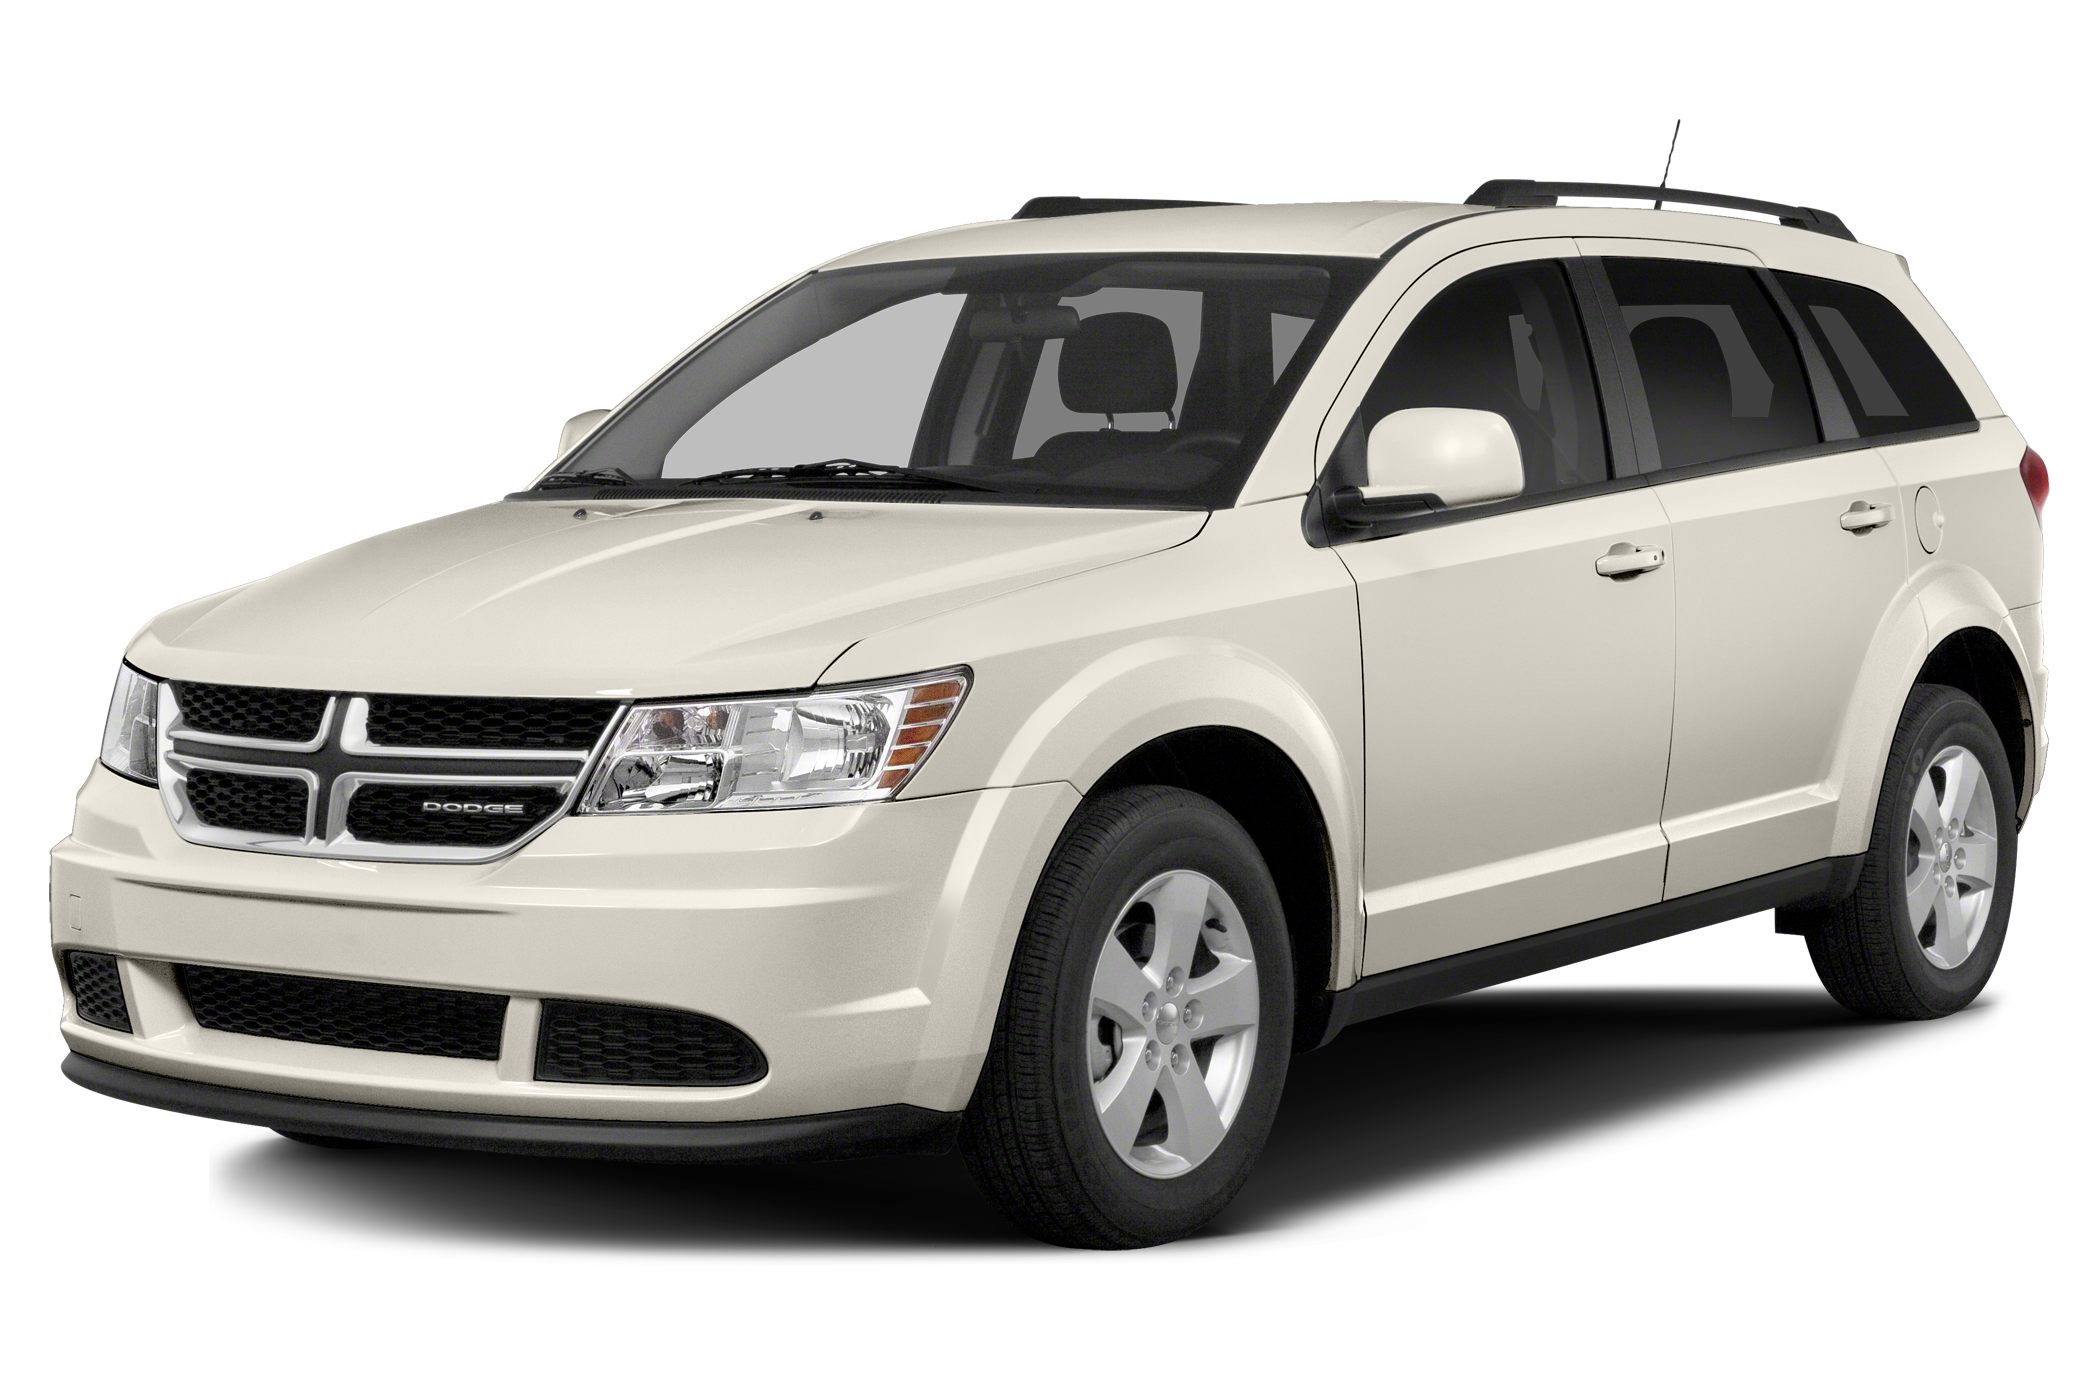 2015 Dodge Journey Crossroad SUV for sale in Twin Falls for $29,995 with 0 miles.